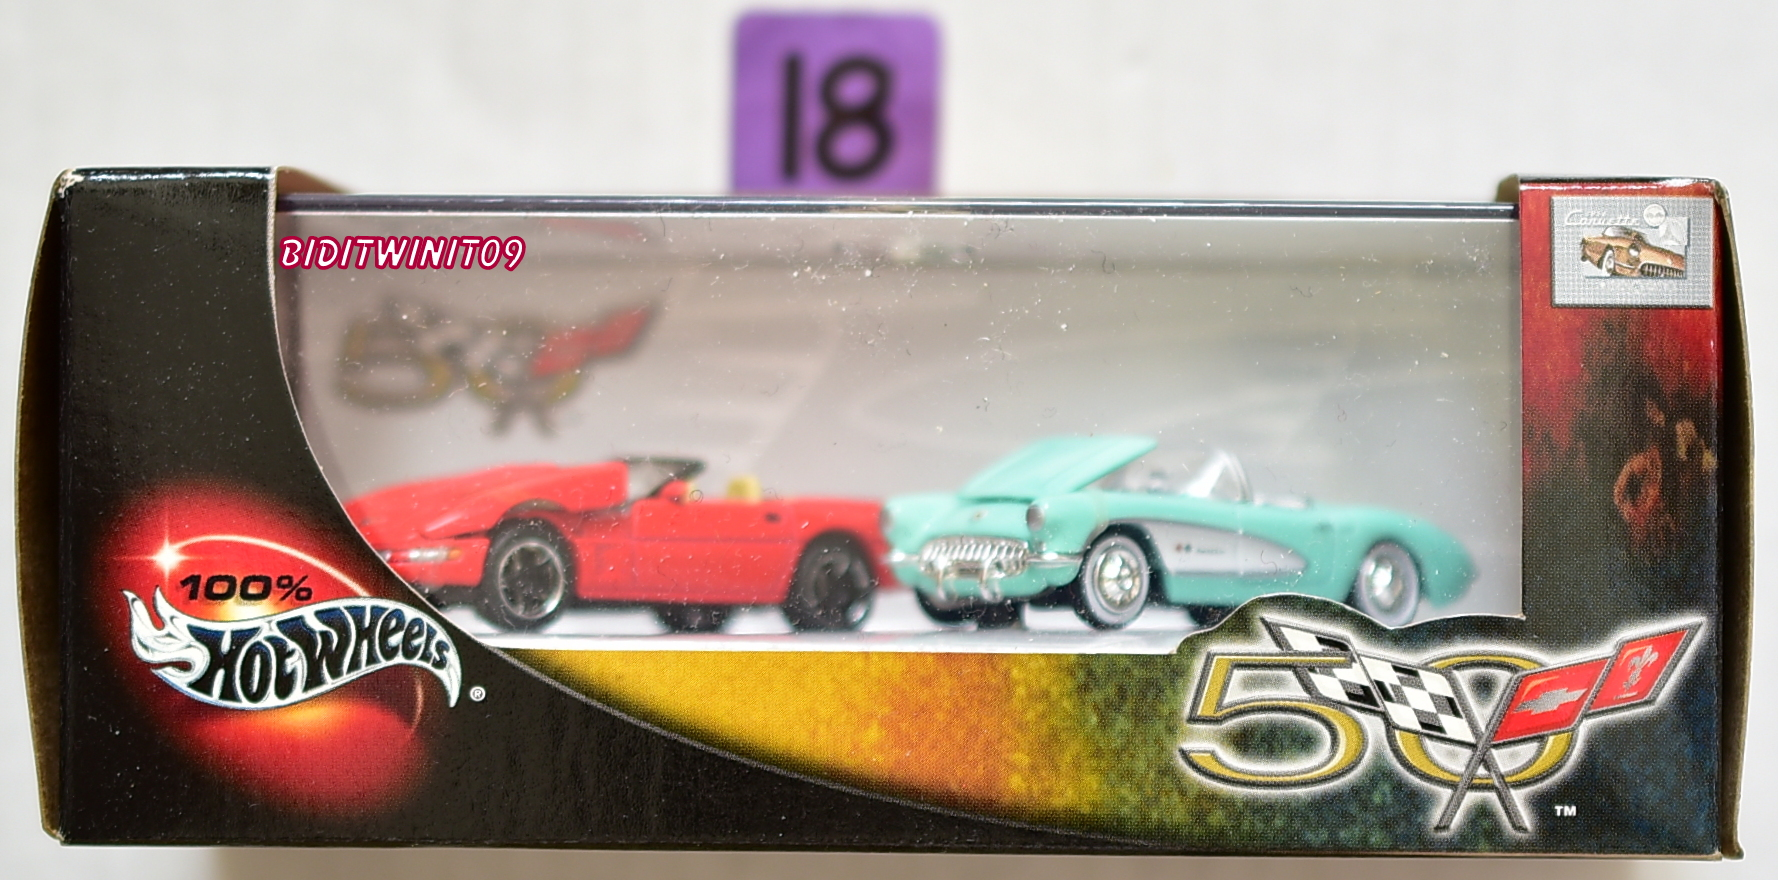 100% HOT WHEELS 50 YEARS OF CORVETTE 2 CAR PACK E+